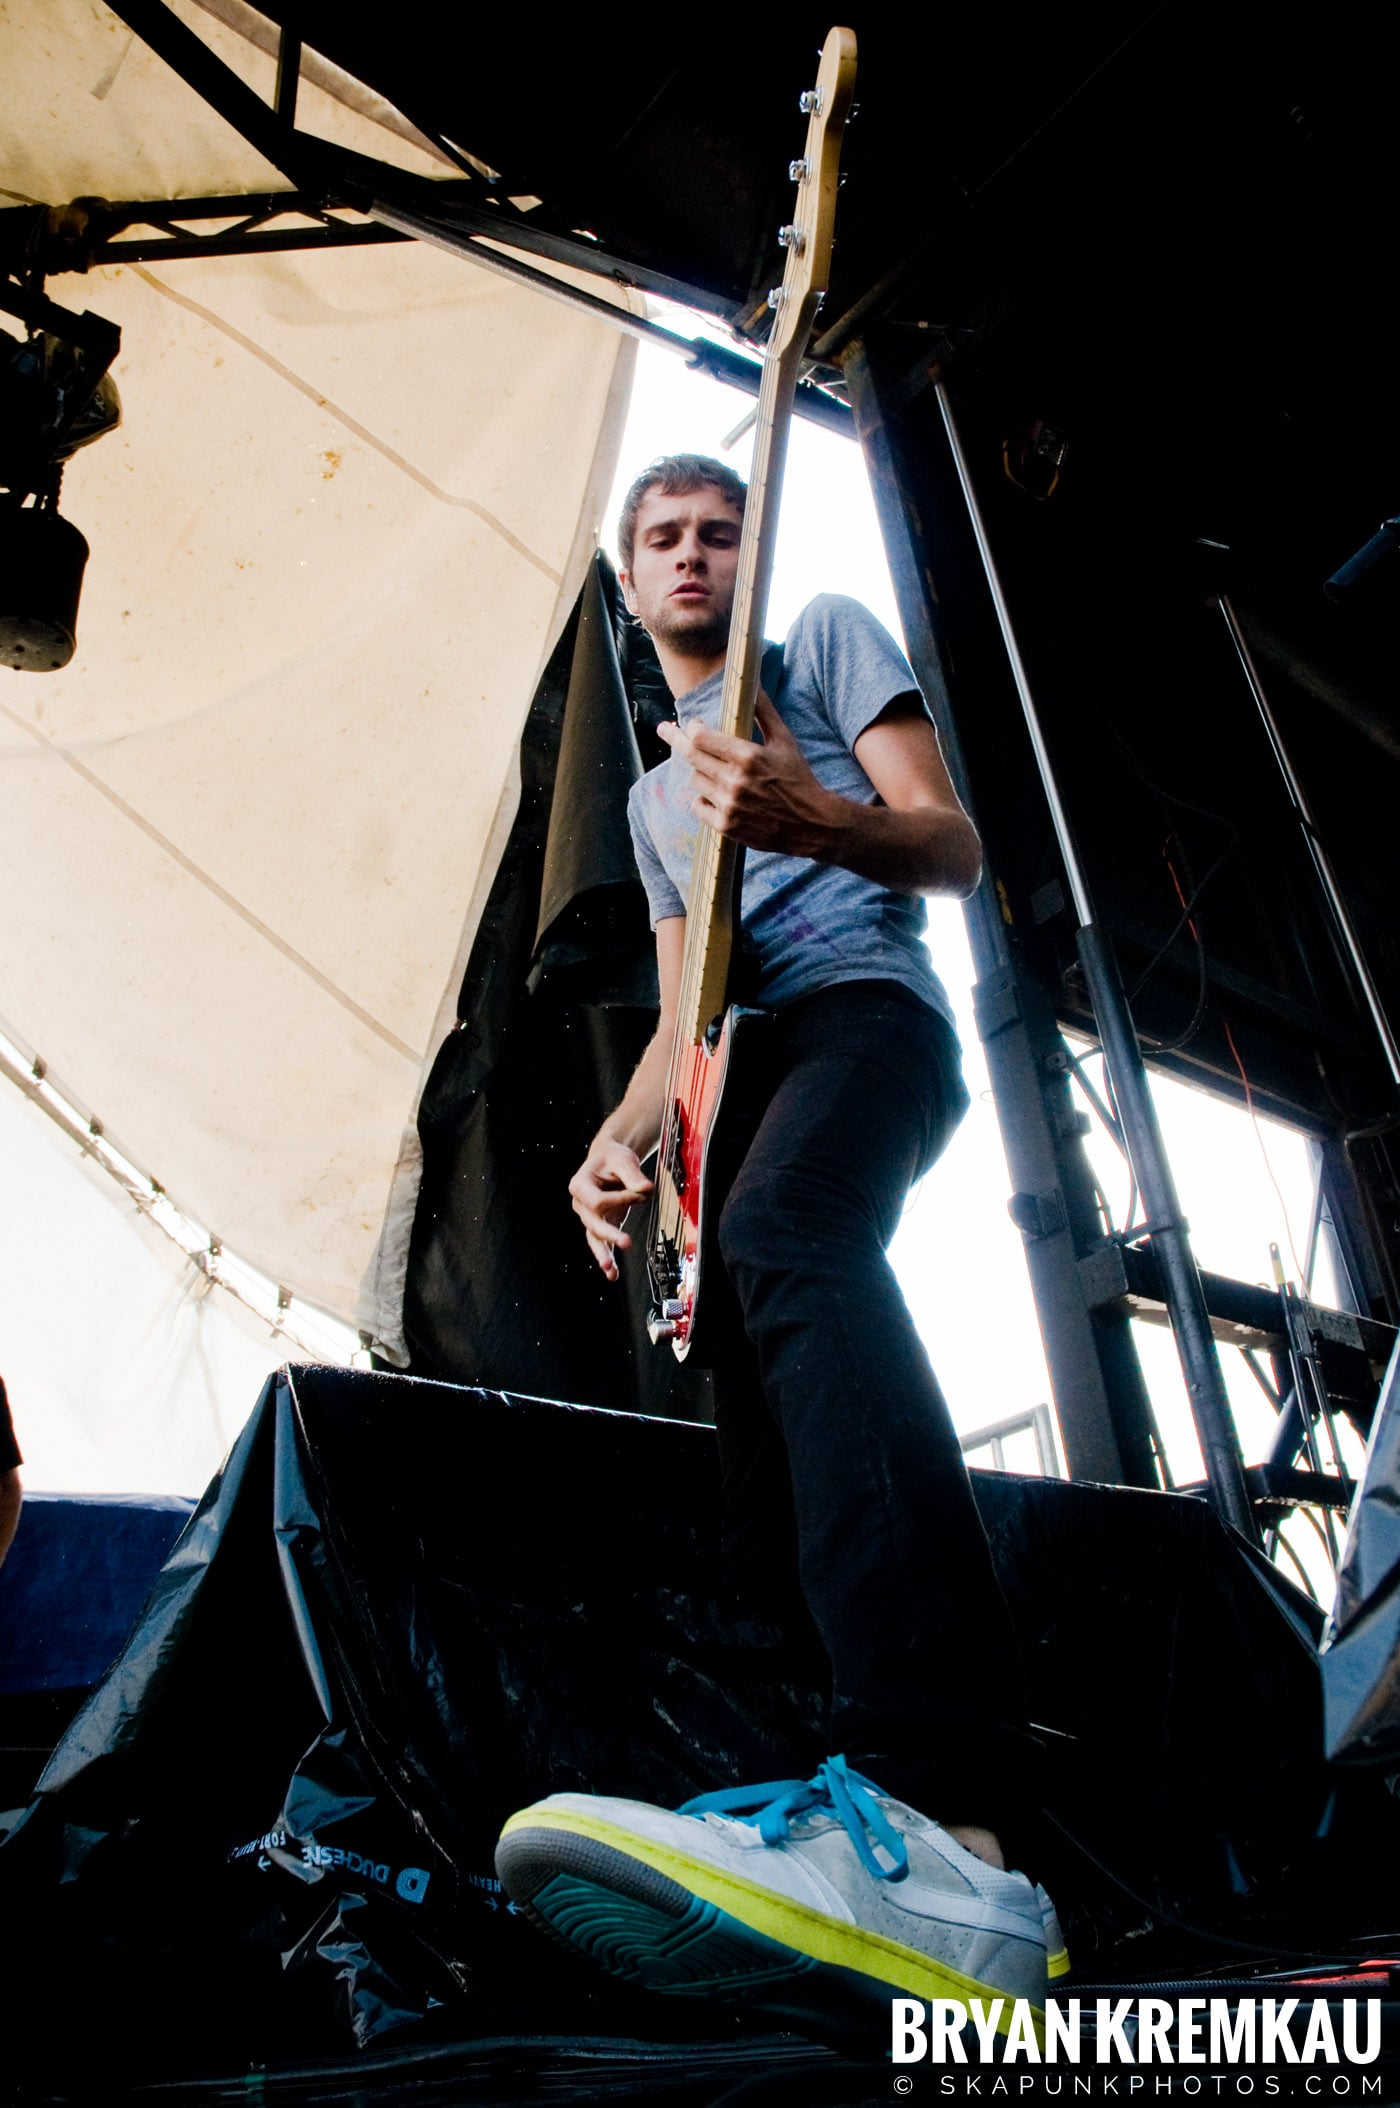 The Academy Is @ Warped Tour 08, Scranton PA - 7.27.08 (5)